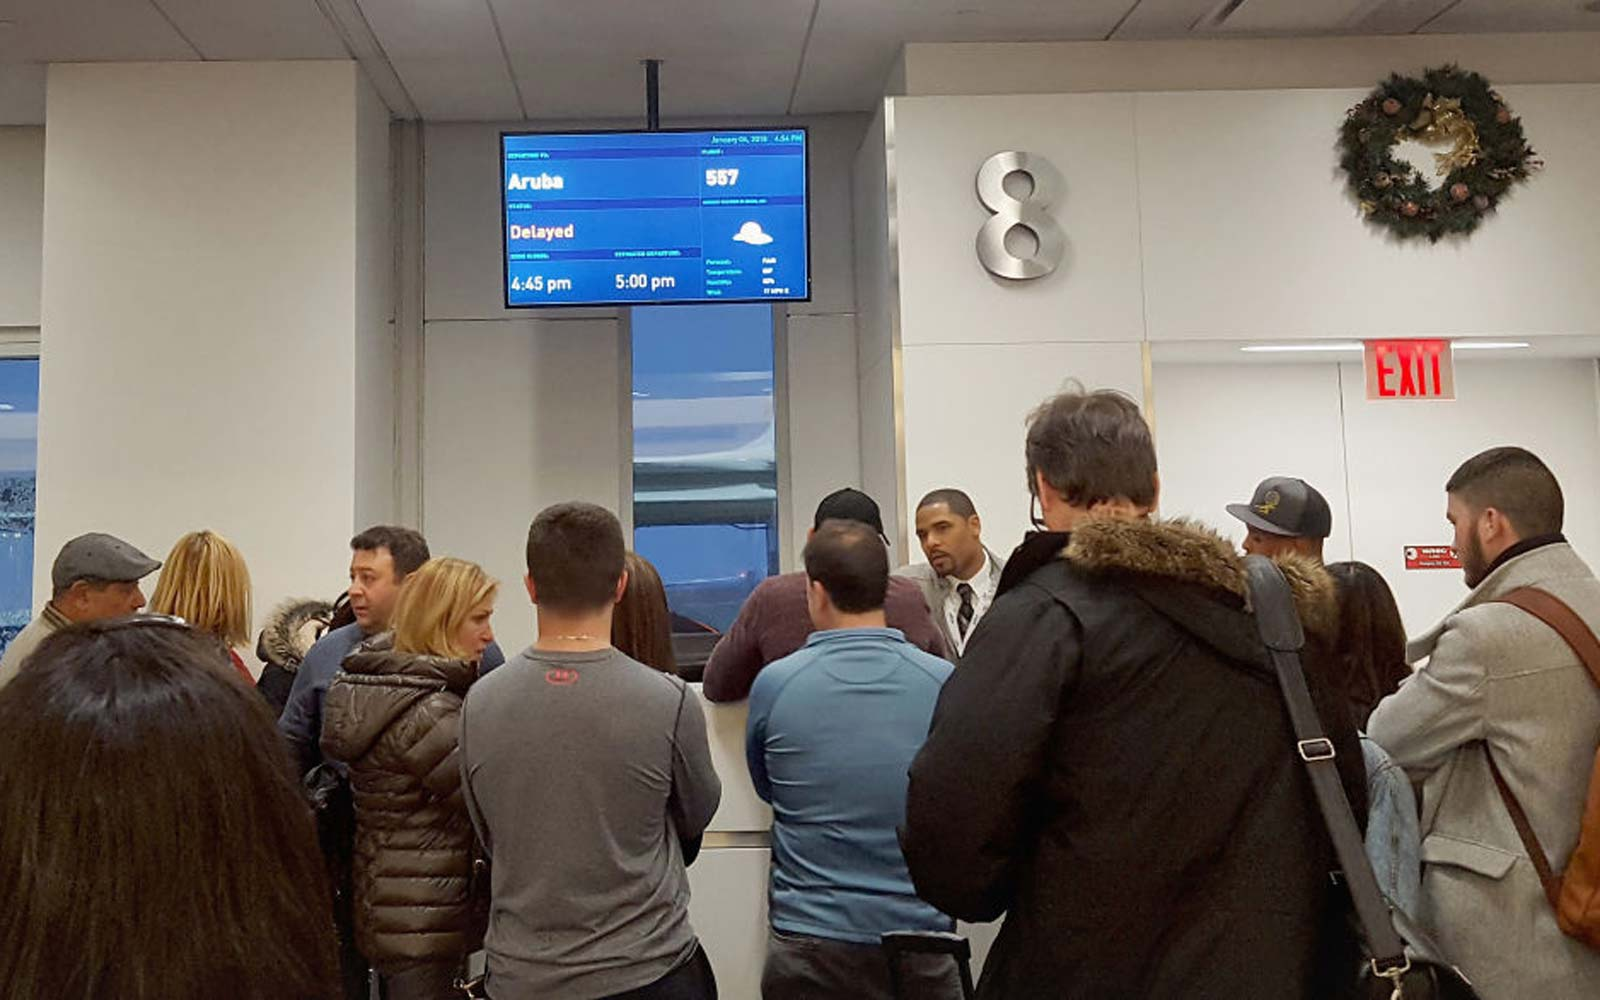 These Airlines Are the Worst When It Comes to Flight Delays